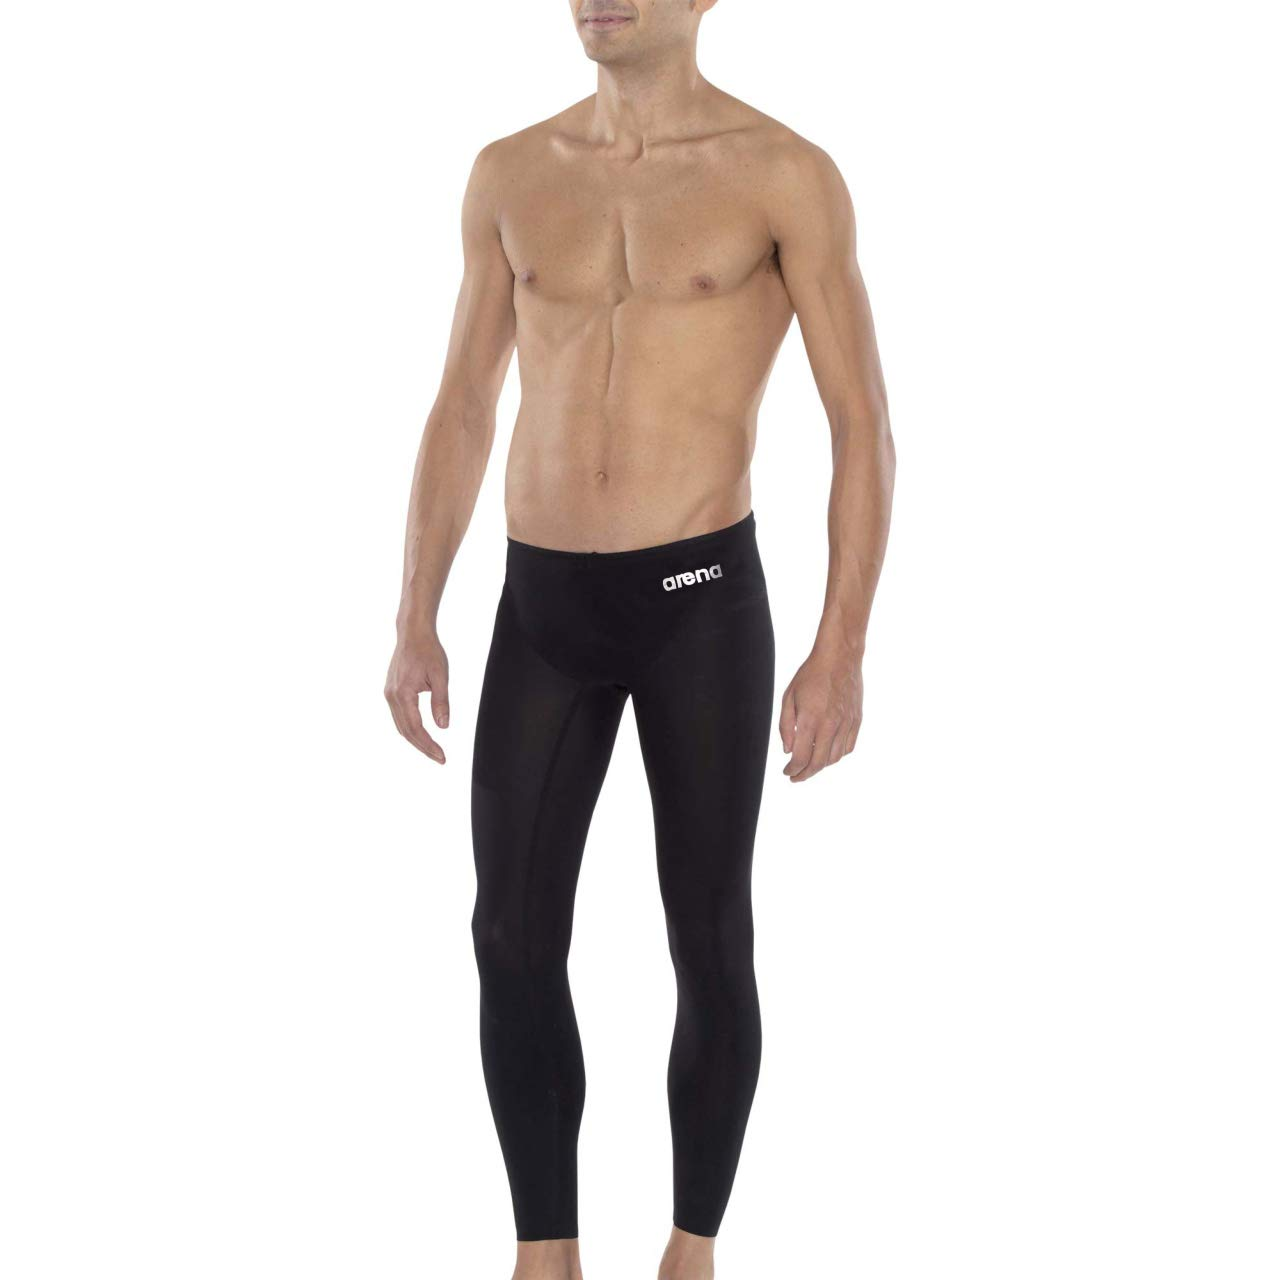 Arena Powerskin R-Evo SL Open Water Pant, Black, 34 by Arena (Image #1)